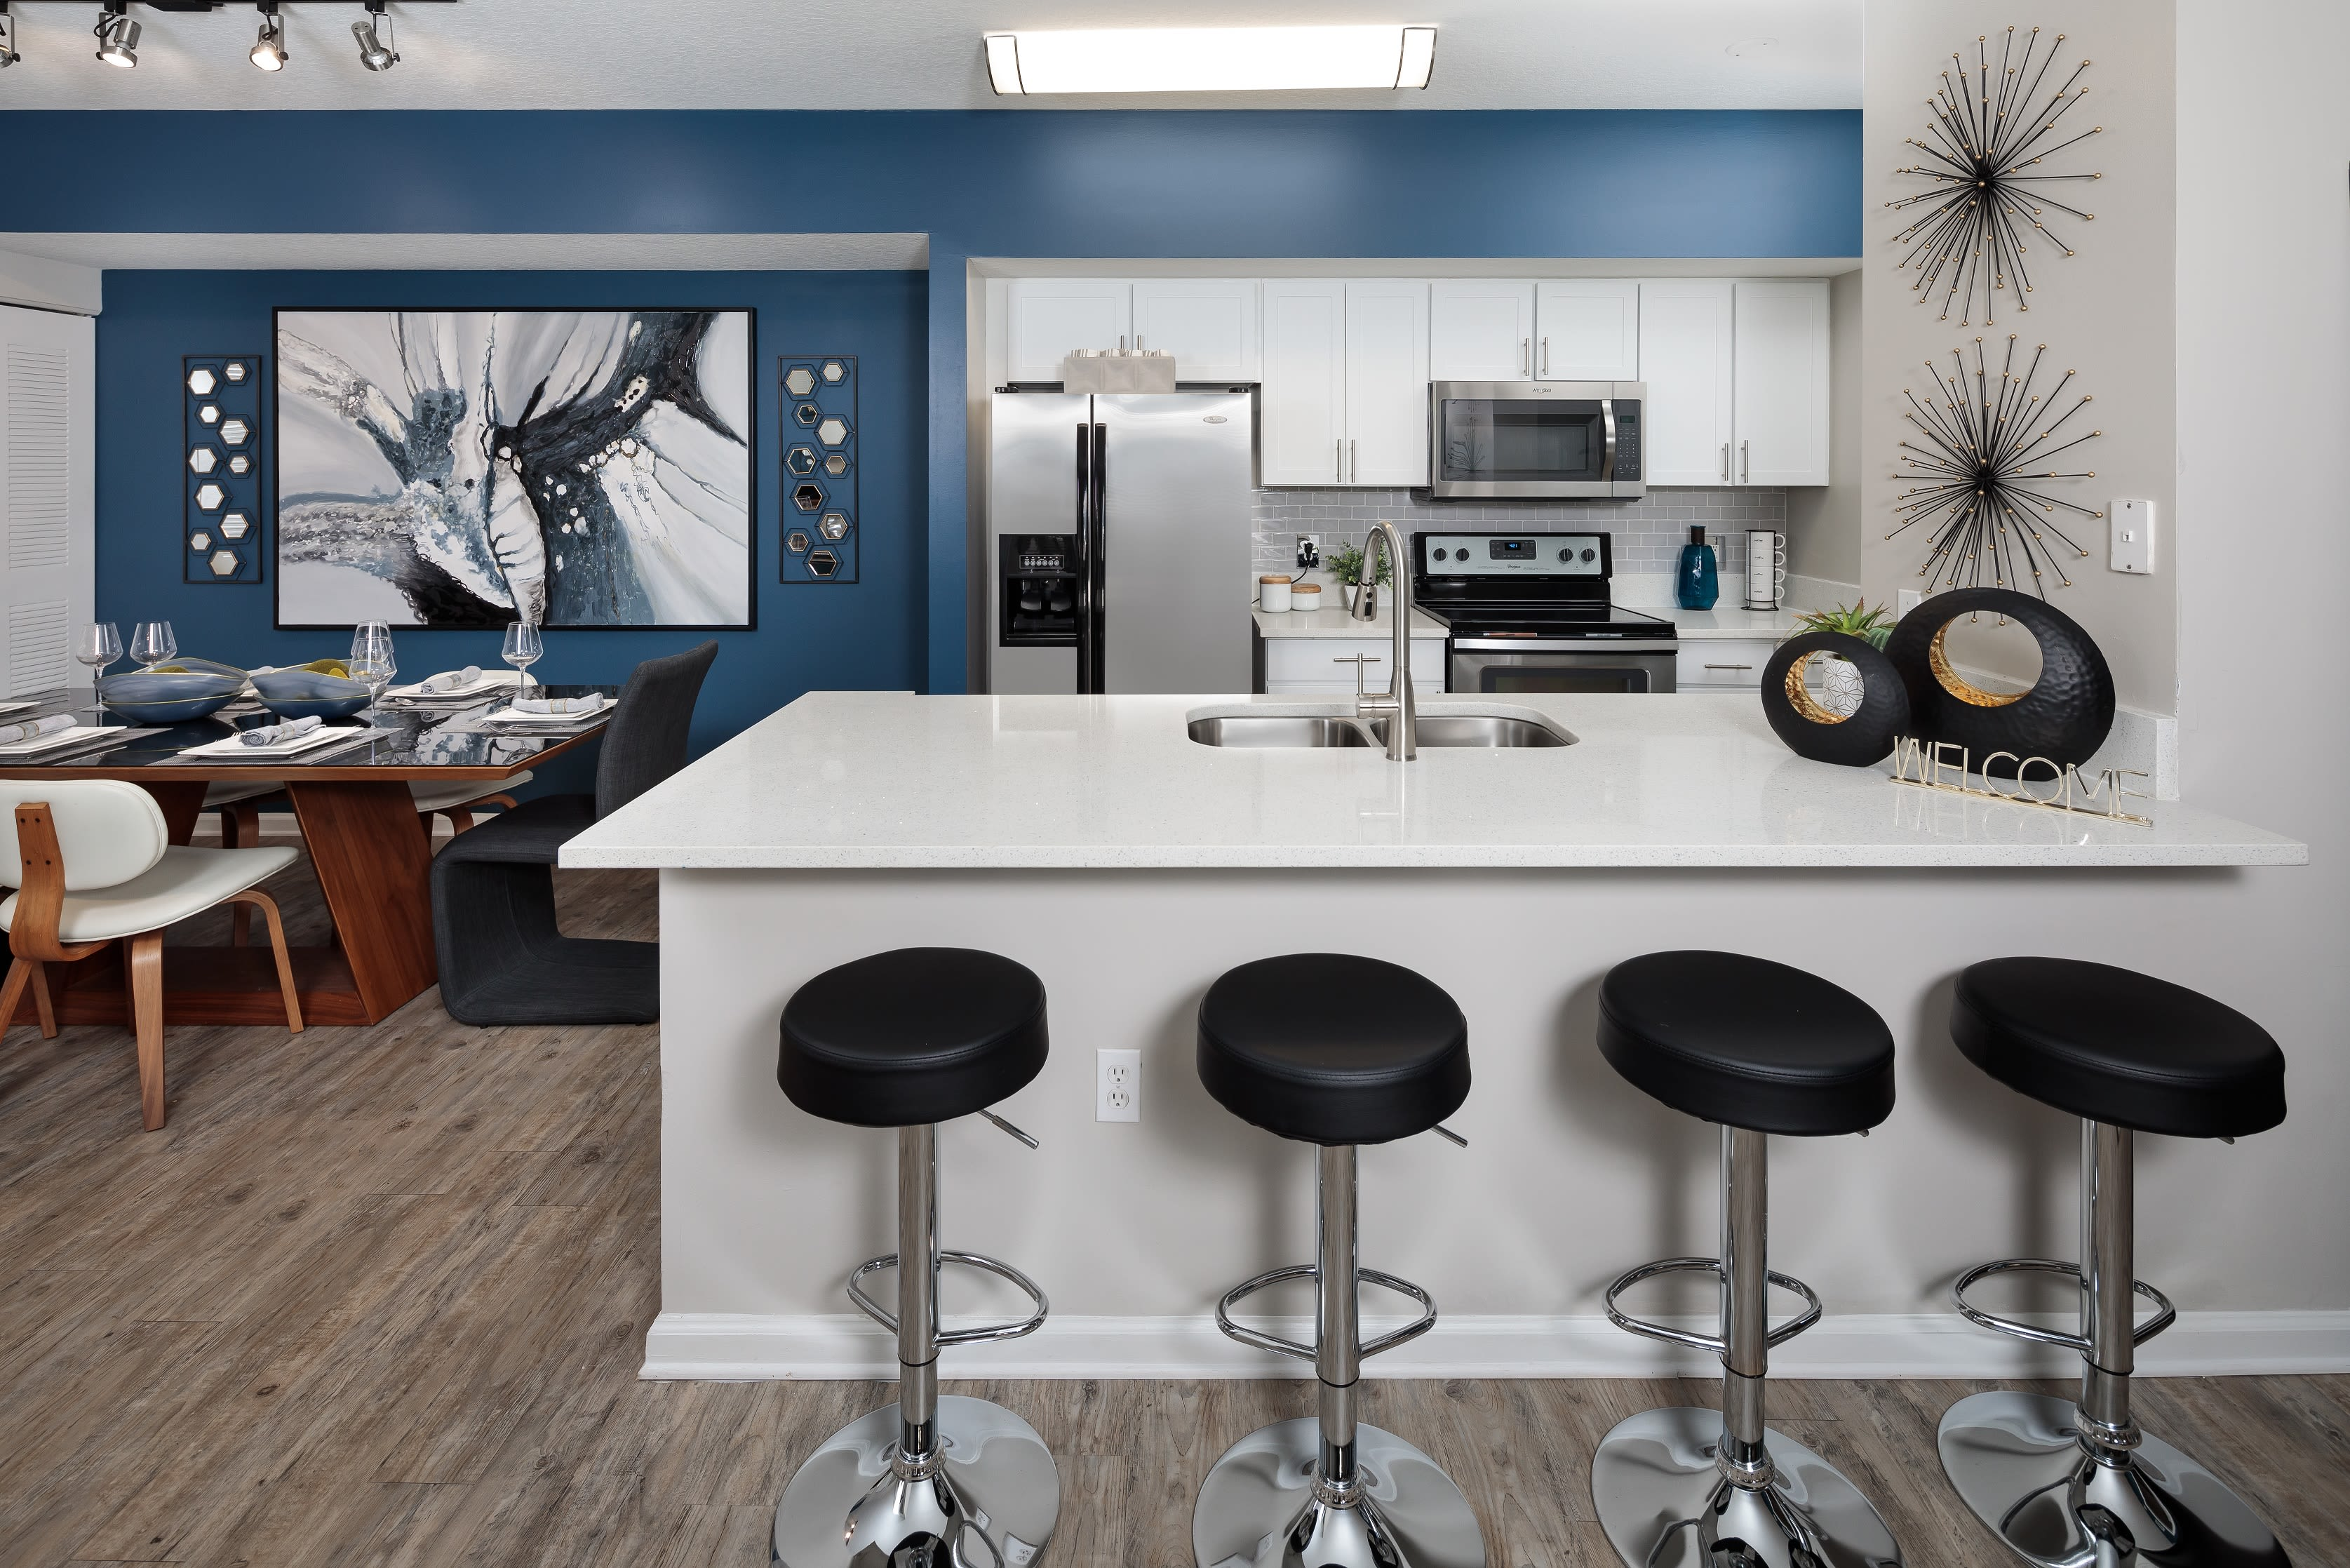 Breakfast bar area with tons of counter space for cooking at The Pearl in Ft Lauderdale, Florida